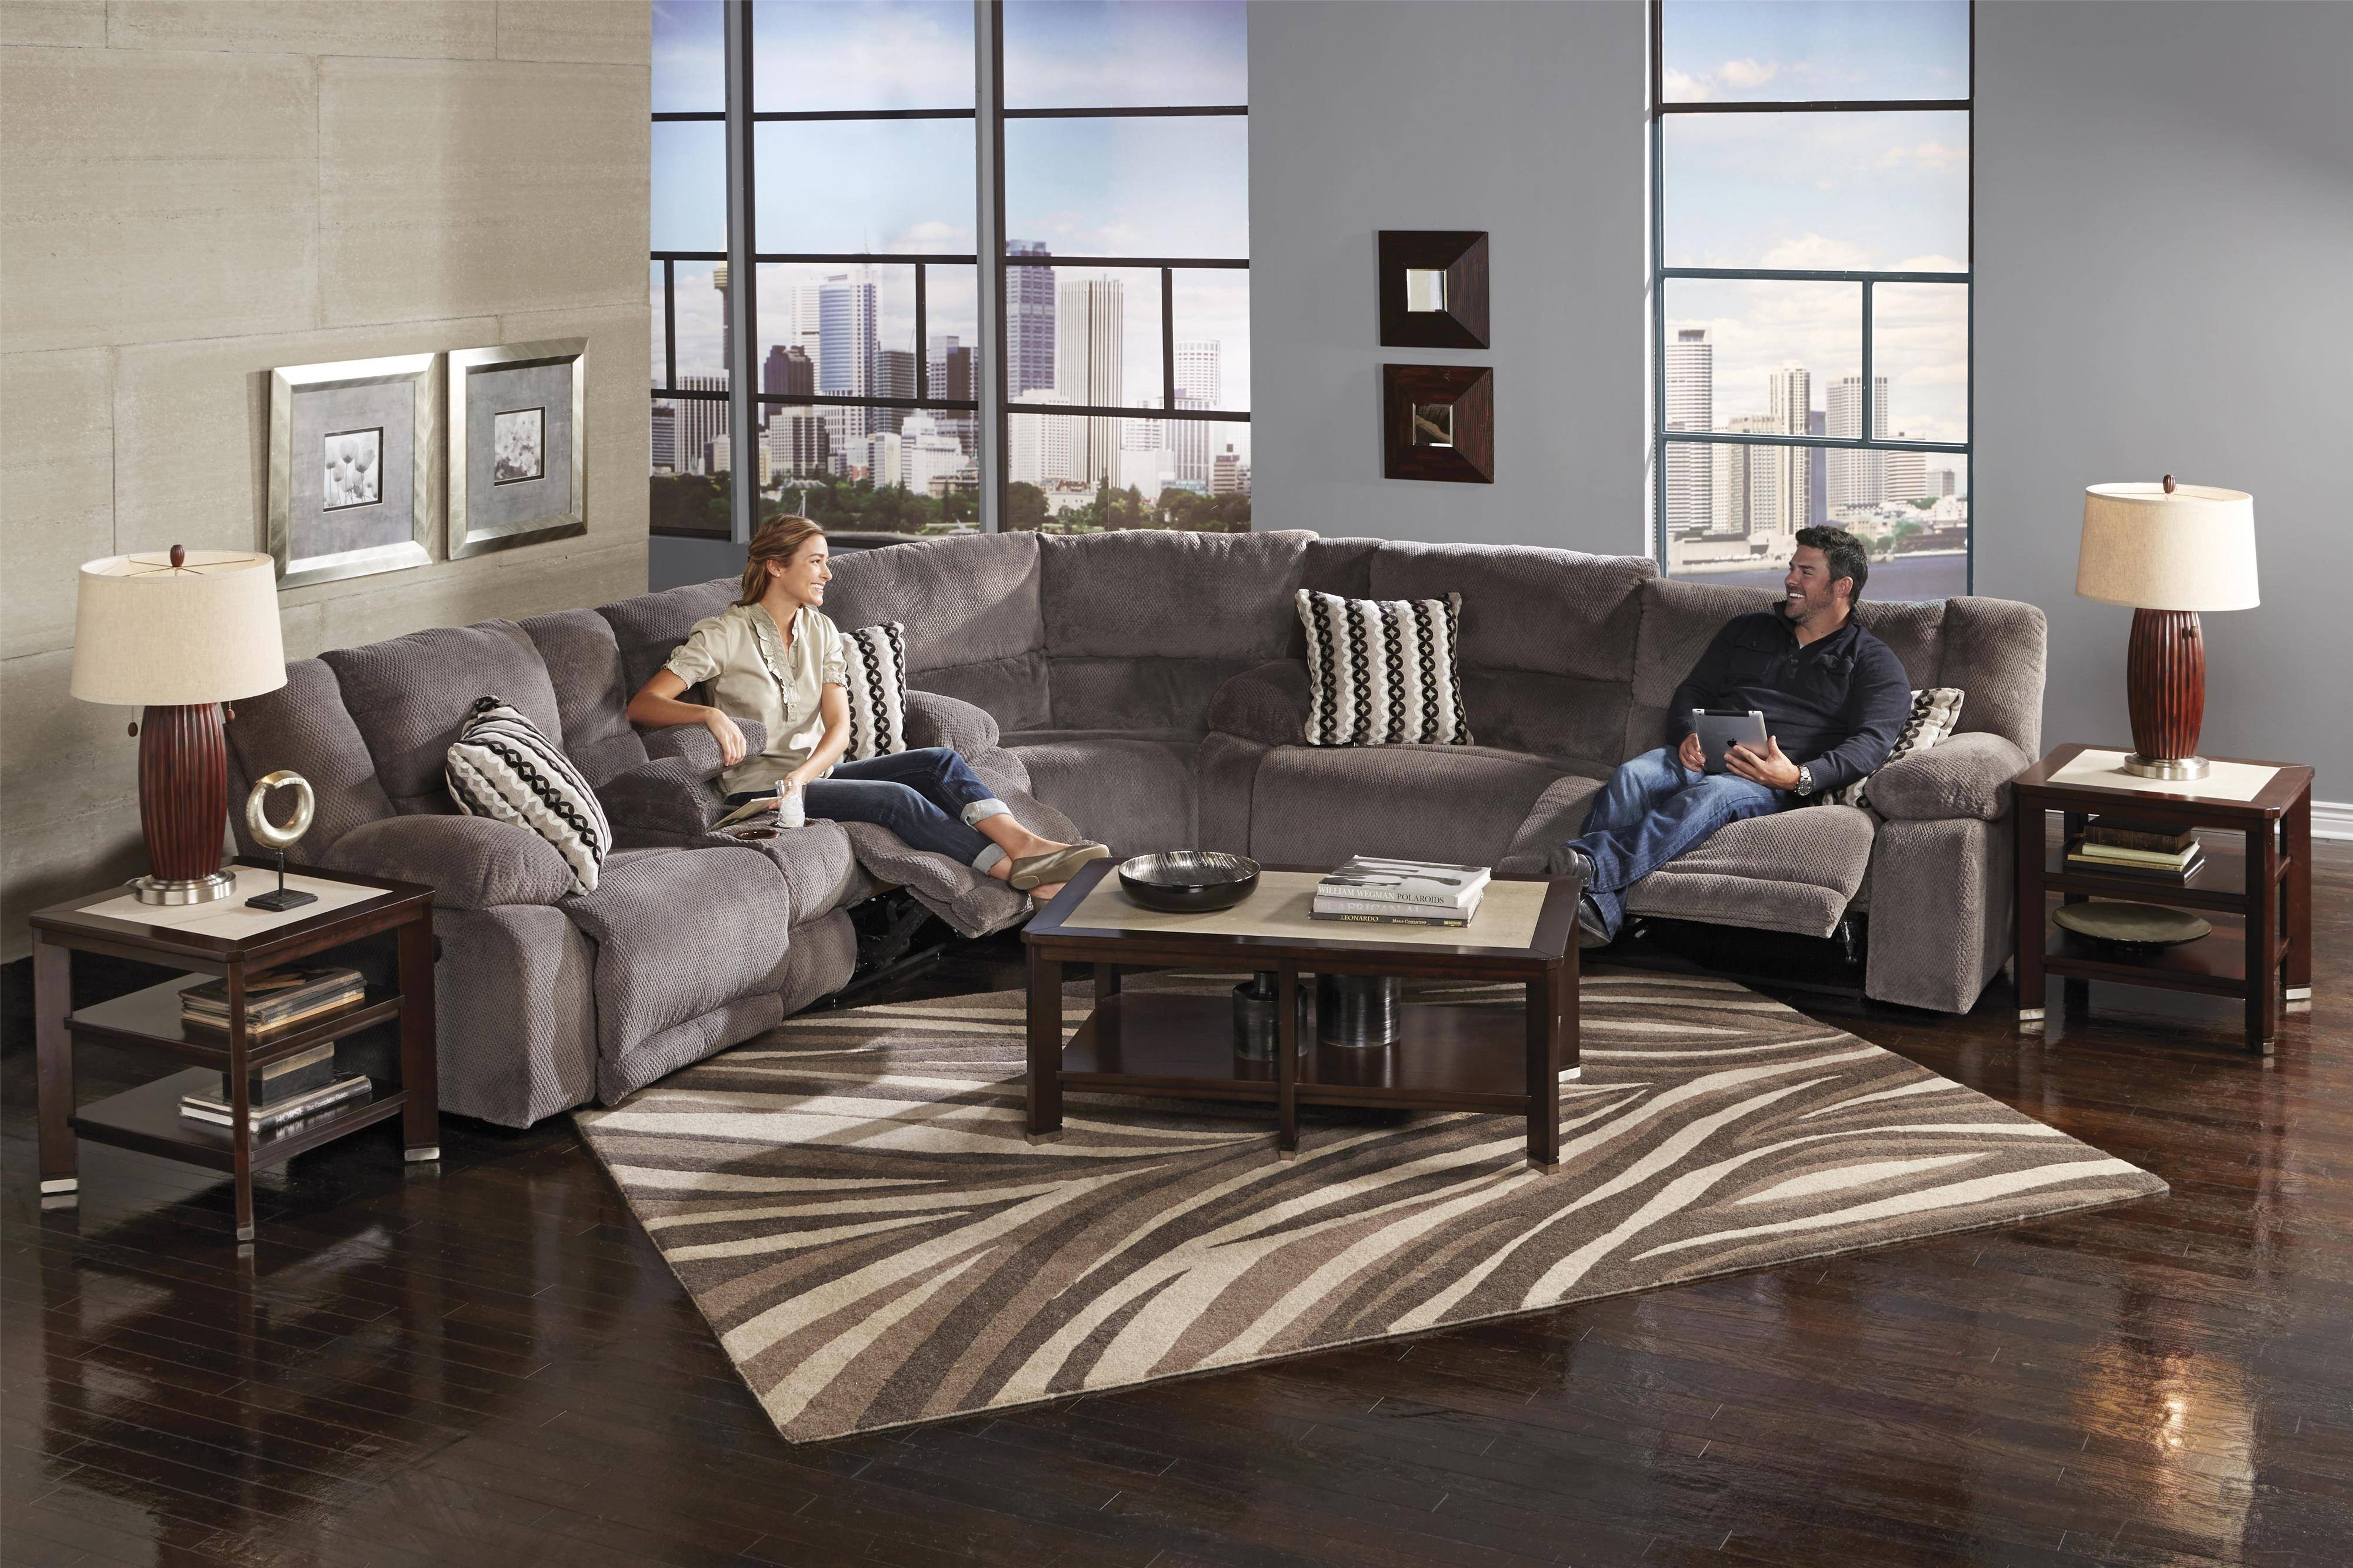 Furniture: Reclining Sectional Sofas For Small Spaces | Reclining pertaining to Sectional Sofas For Small Spaces With Recliners (Image 12 of 30)